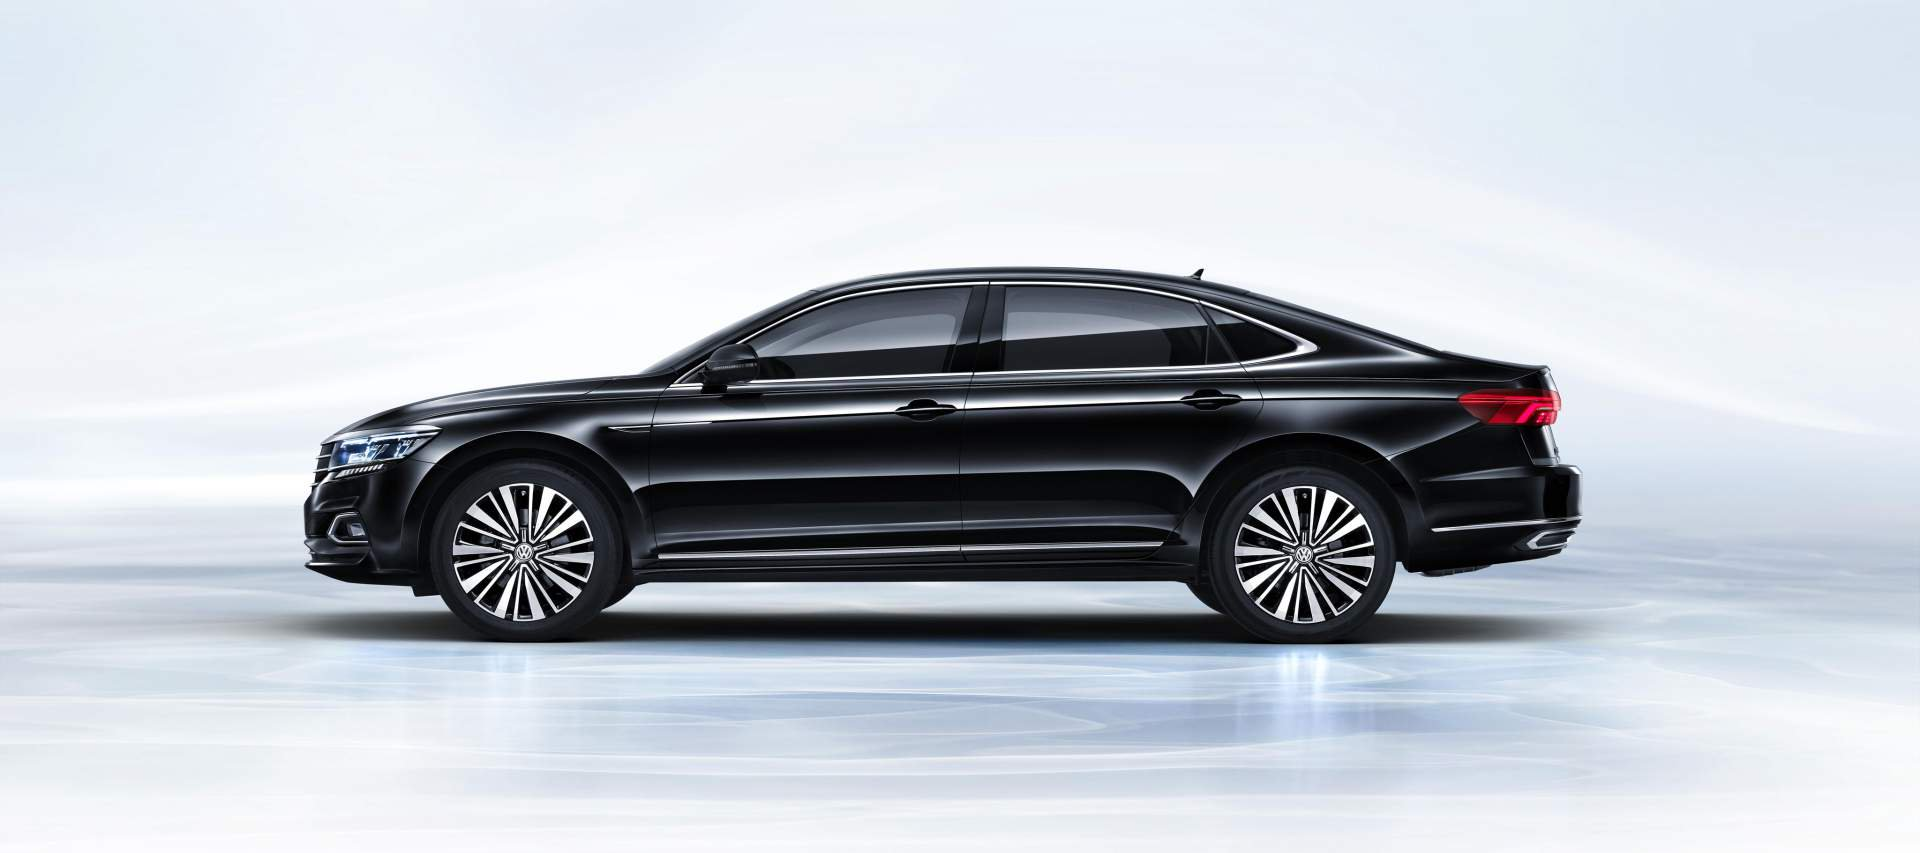 New 2020 Vw Passat Is Not Based On Mqb Will Debut In Detroit